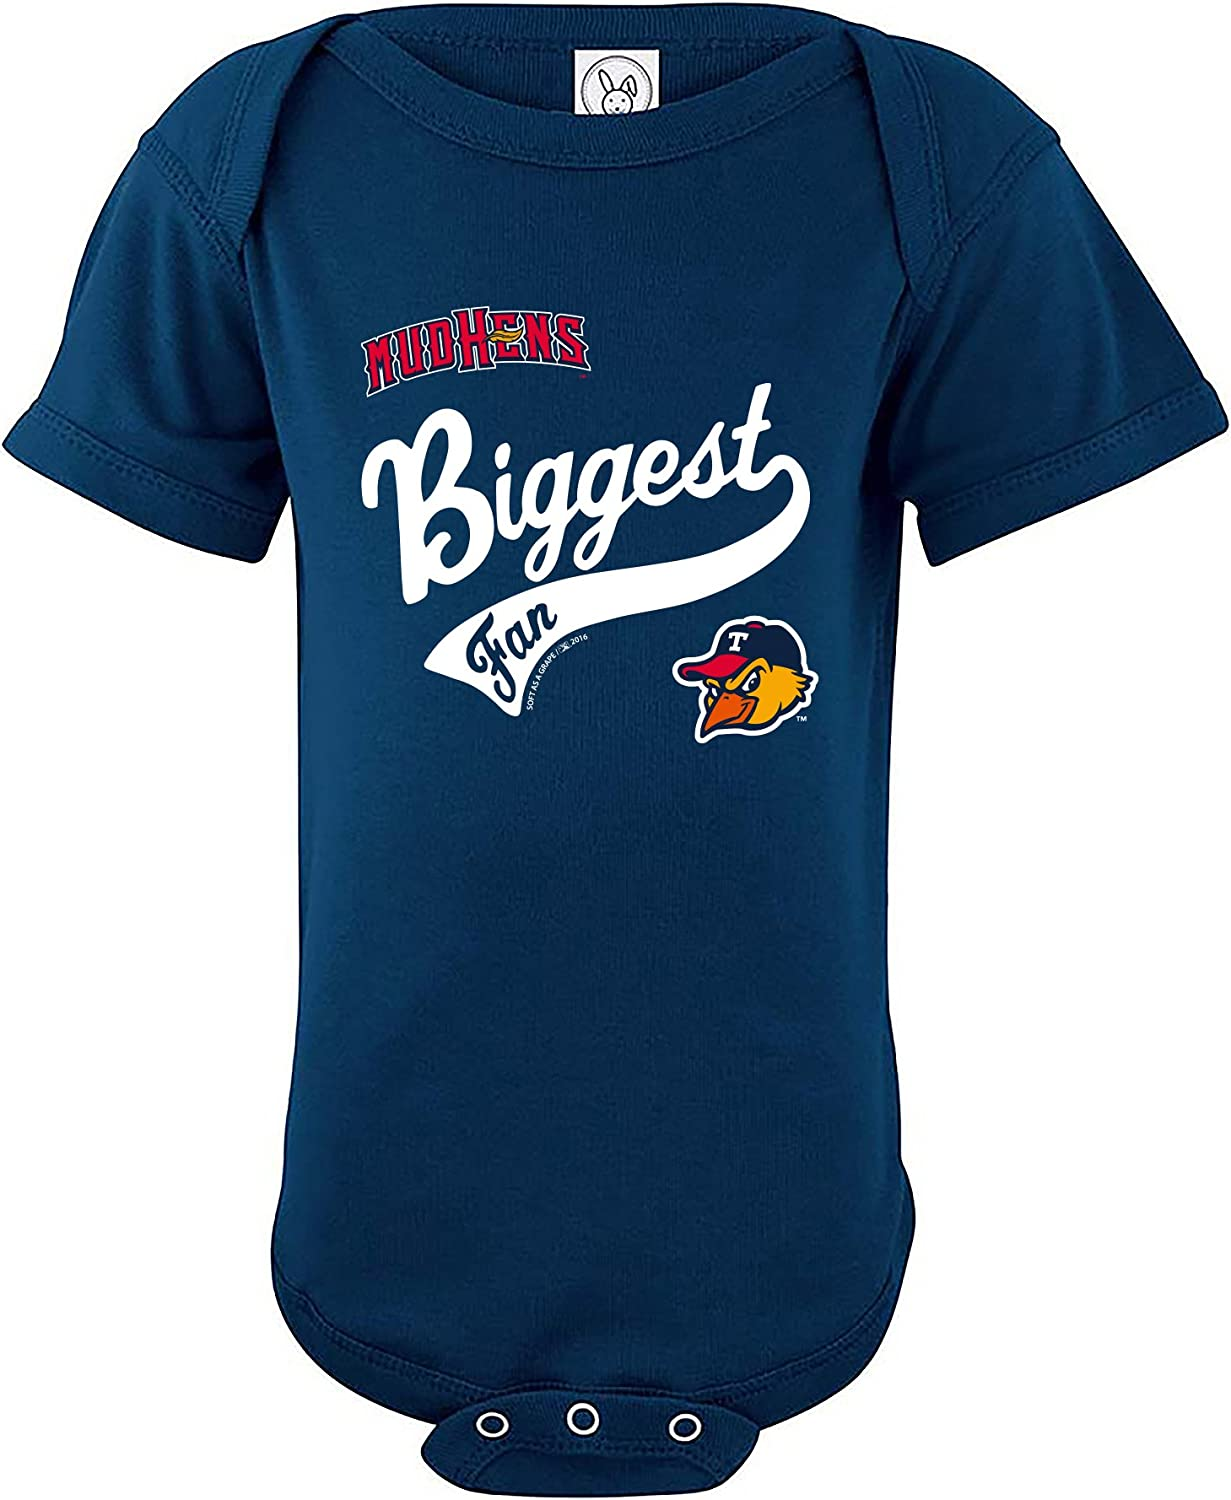 Minor League Baseball Mud Hens Boys Infant Creeper, 6 Months